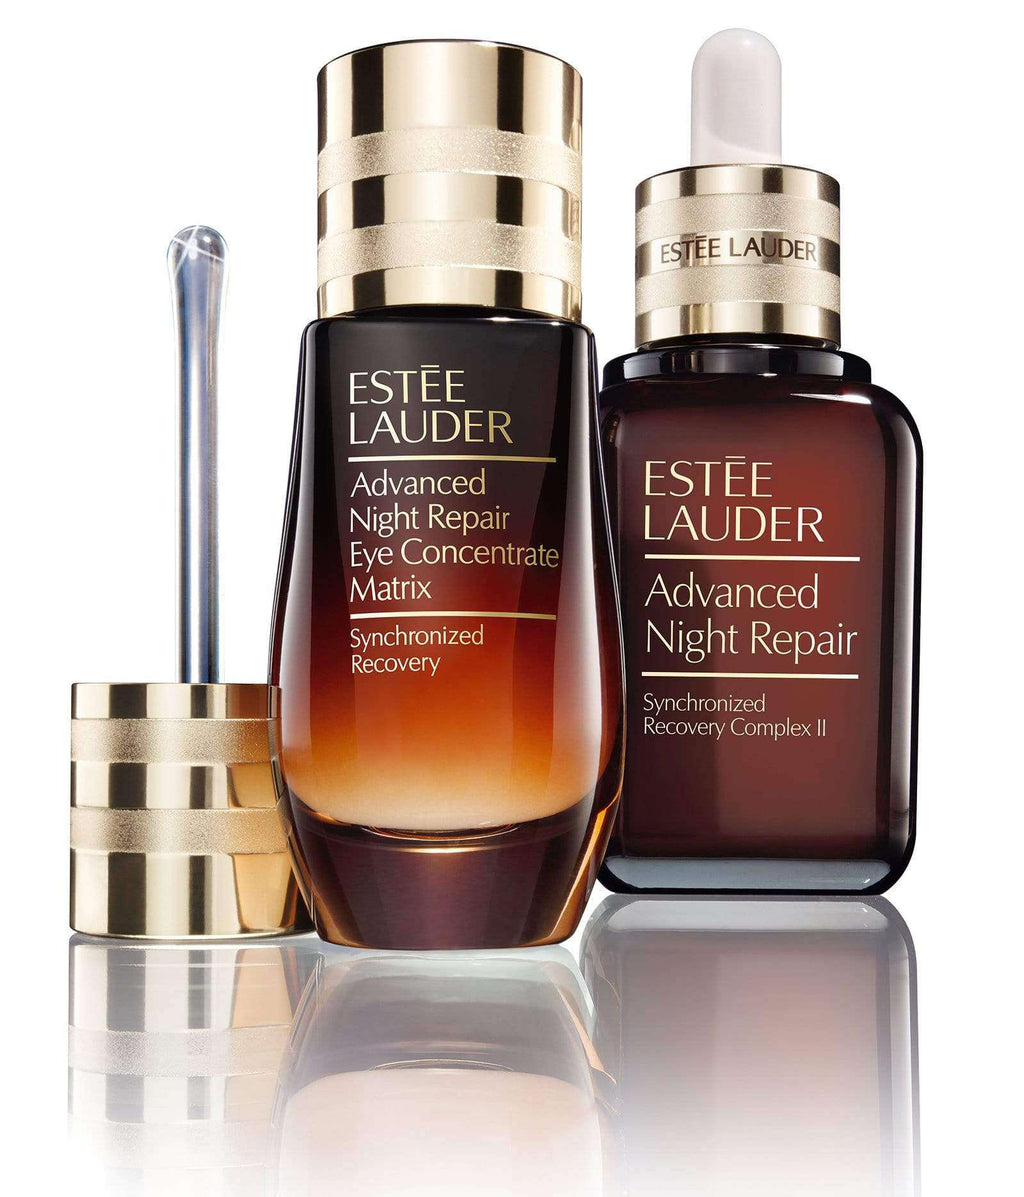 ESTEE LAUDER ADVANCED NIGHT REPAIR FOR FACE & EYES SERUM + EYE CONCENTRATE MATRIX